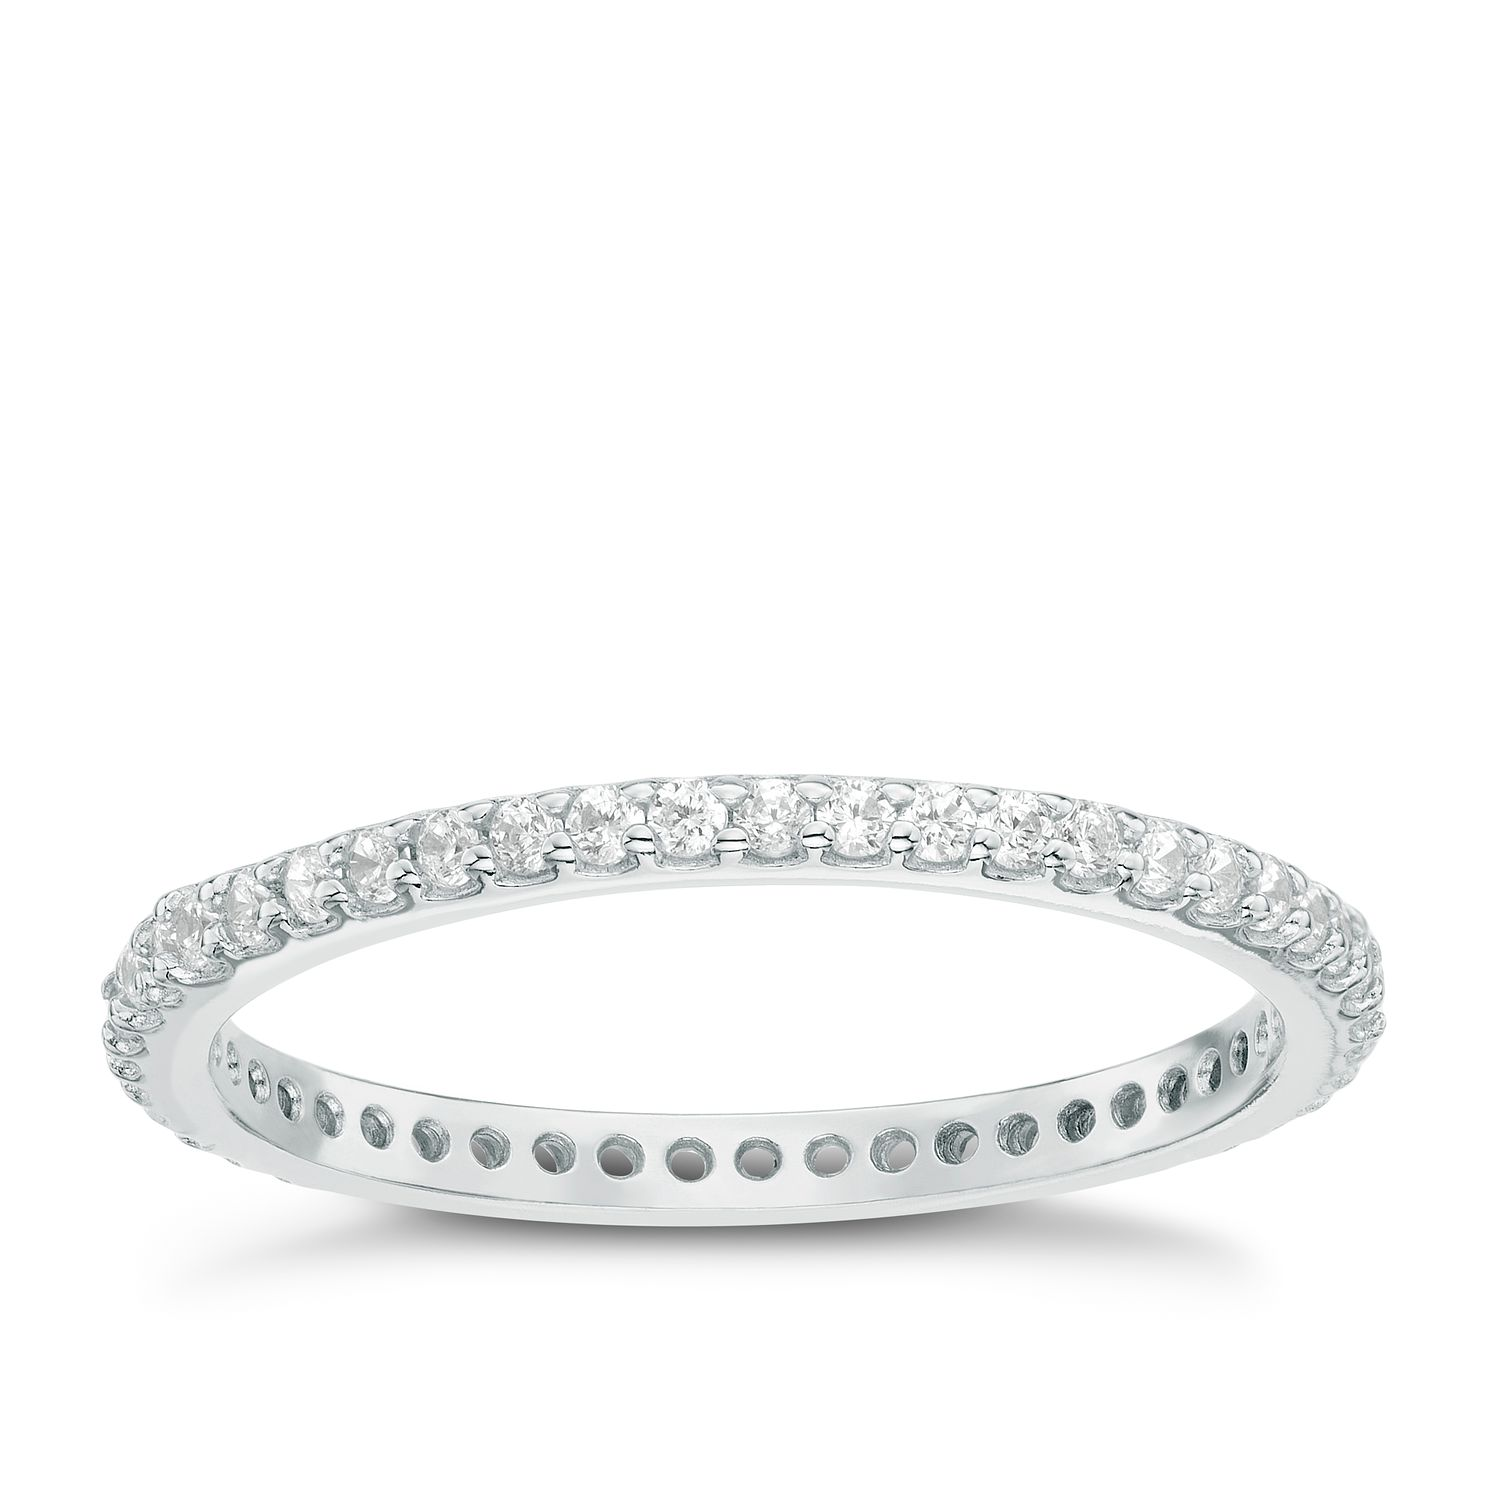 cut diamond eternity silvertone bands carat cocktail products ring zirconia round beloved wedding plated tier ina sparkles faux band rhodium wide silver cz cubic anniversary